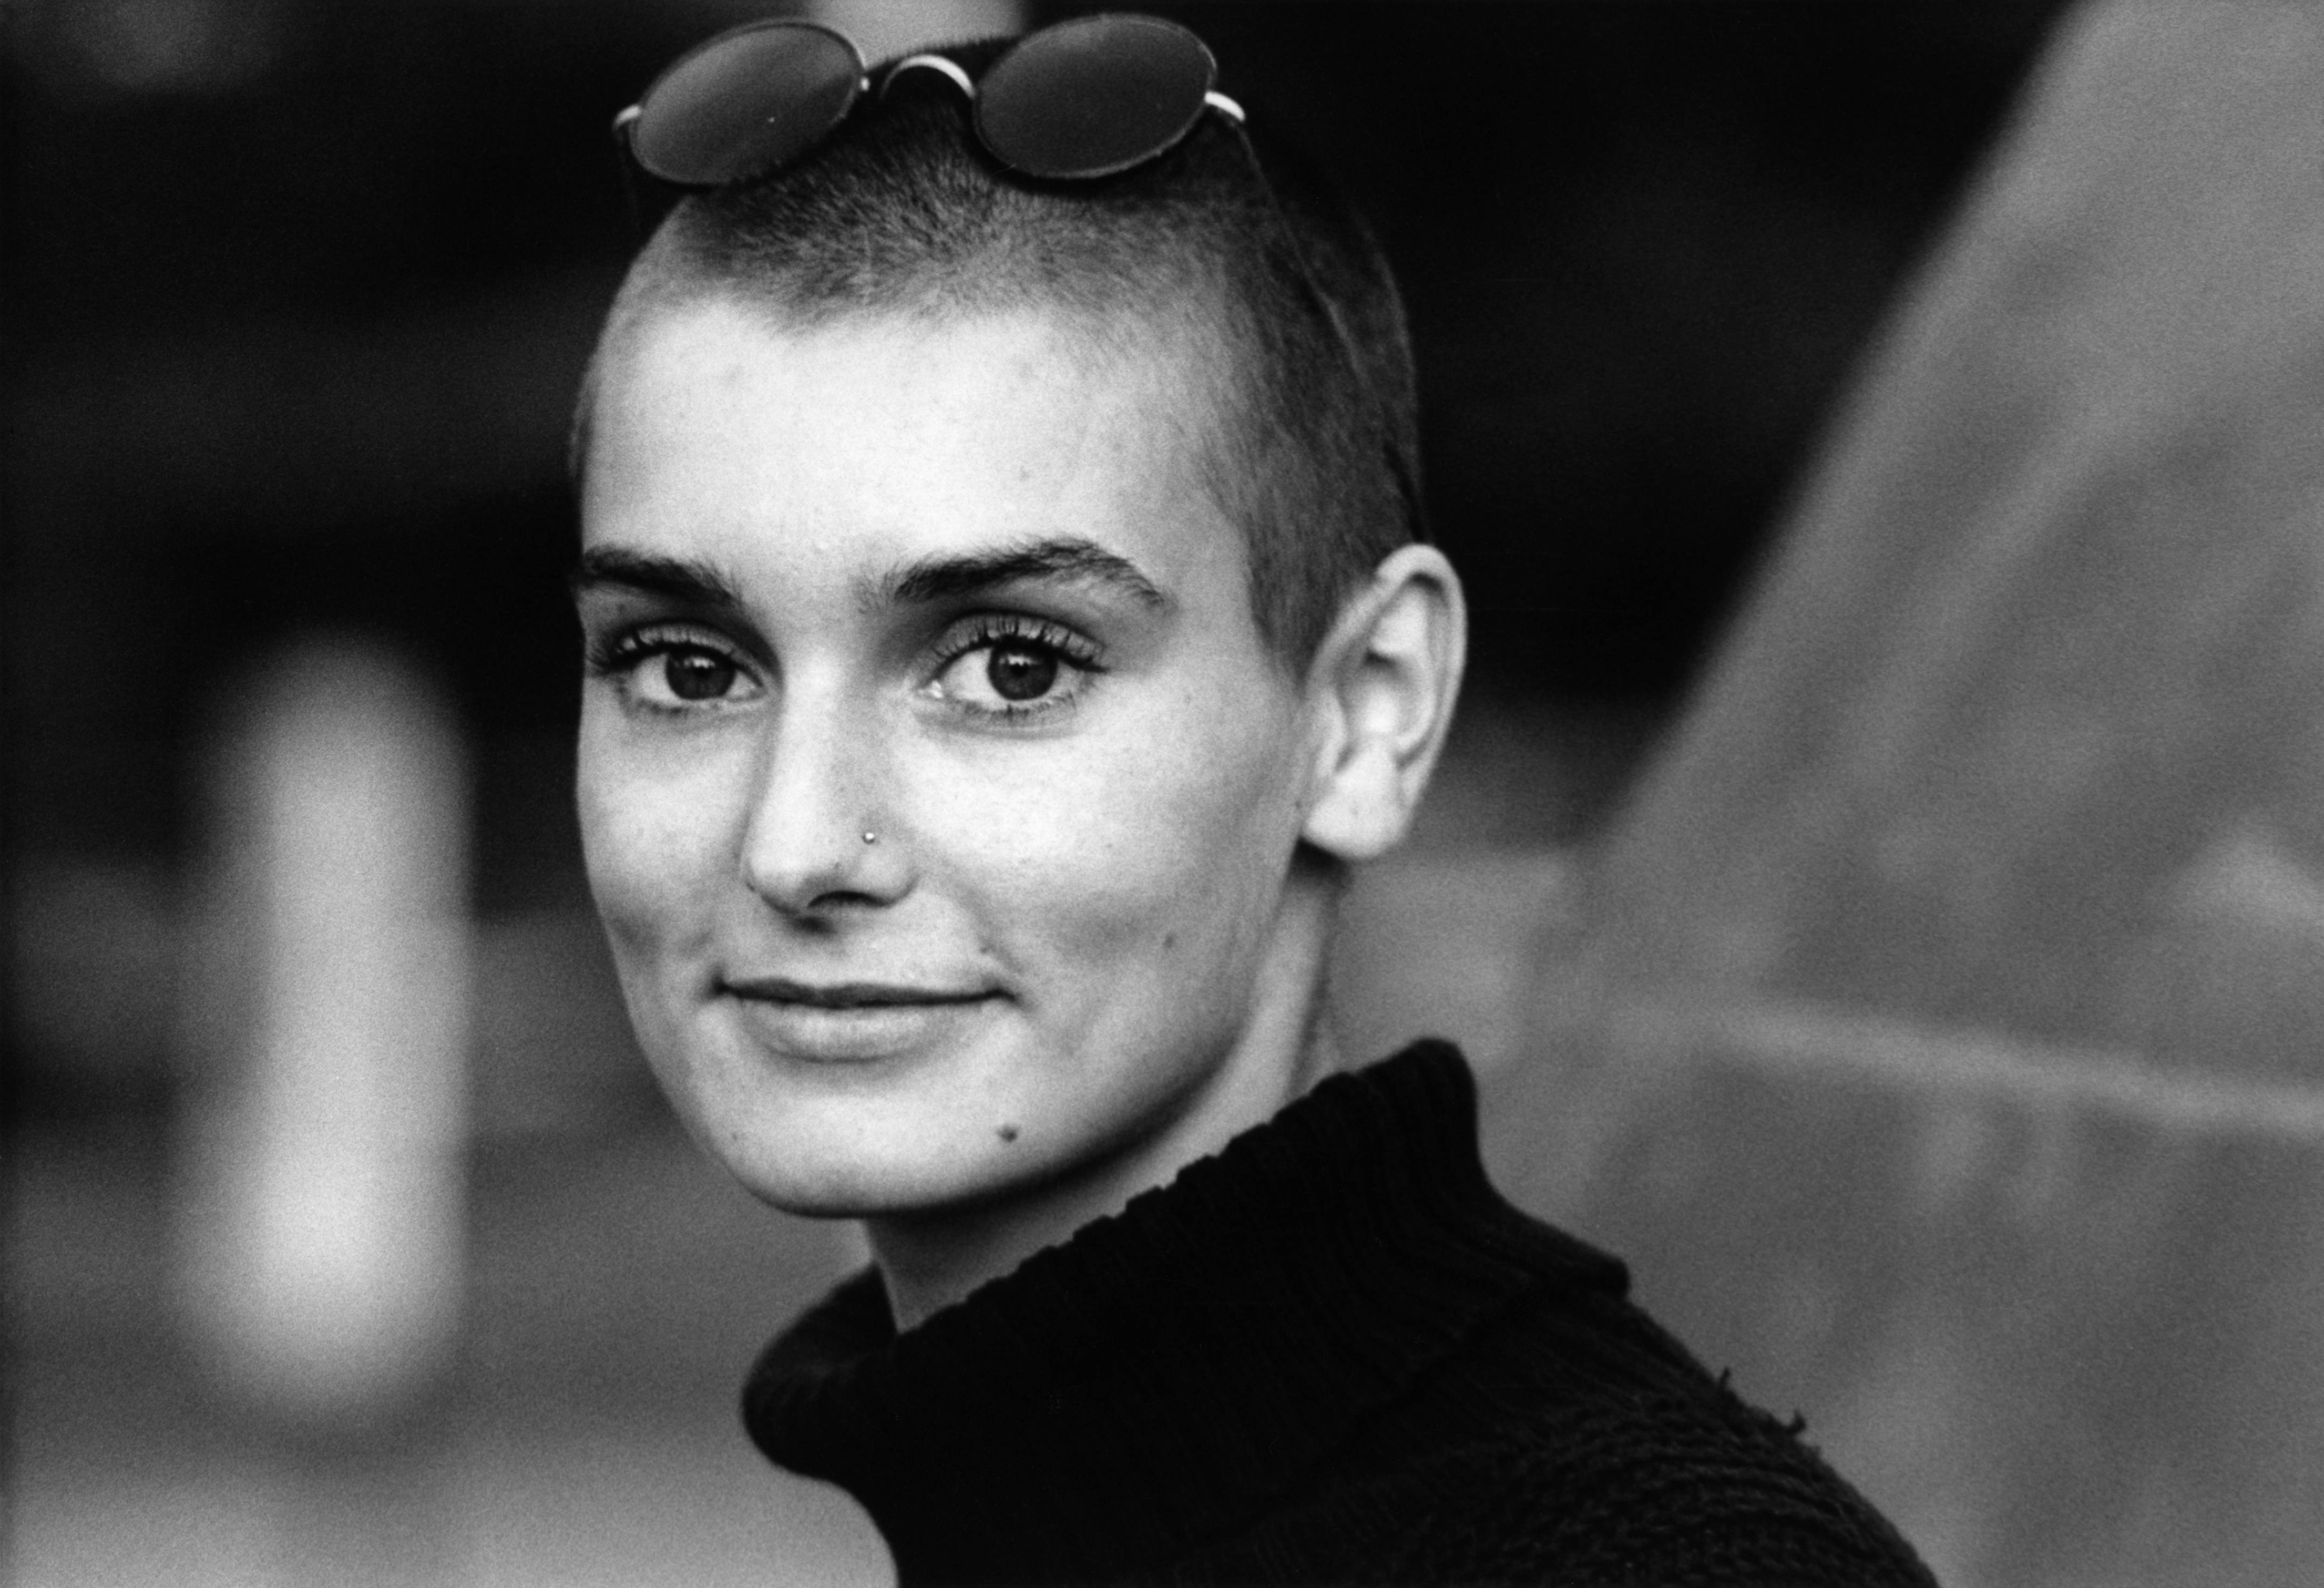 NETHERLANDS - JANUARY 01:  Photo of Sinead O'CONNOR  (Photo by Michel Linssen/Redferns)